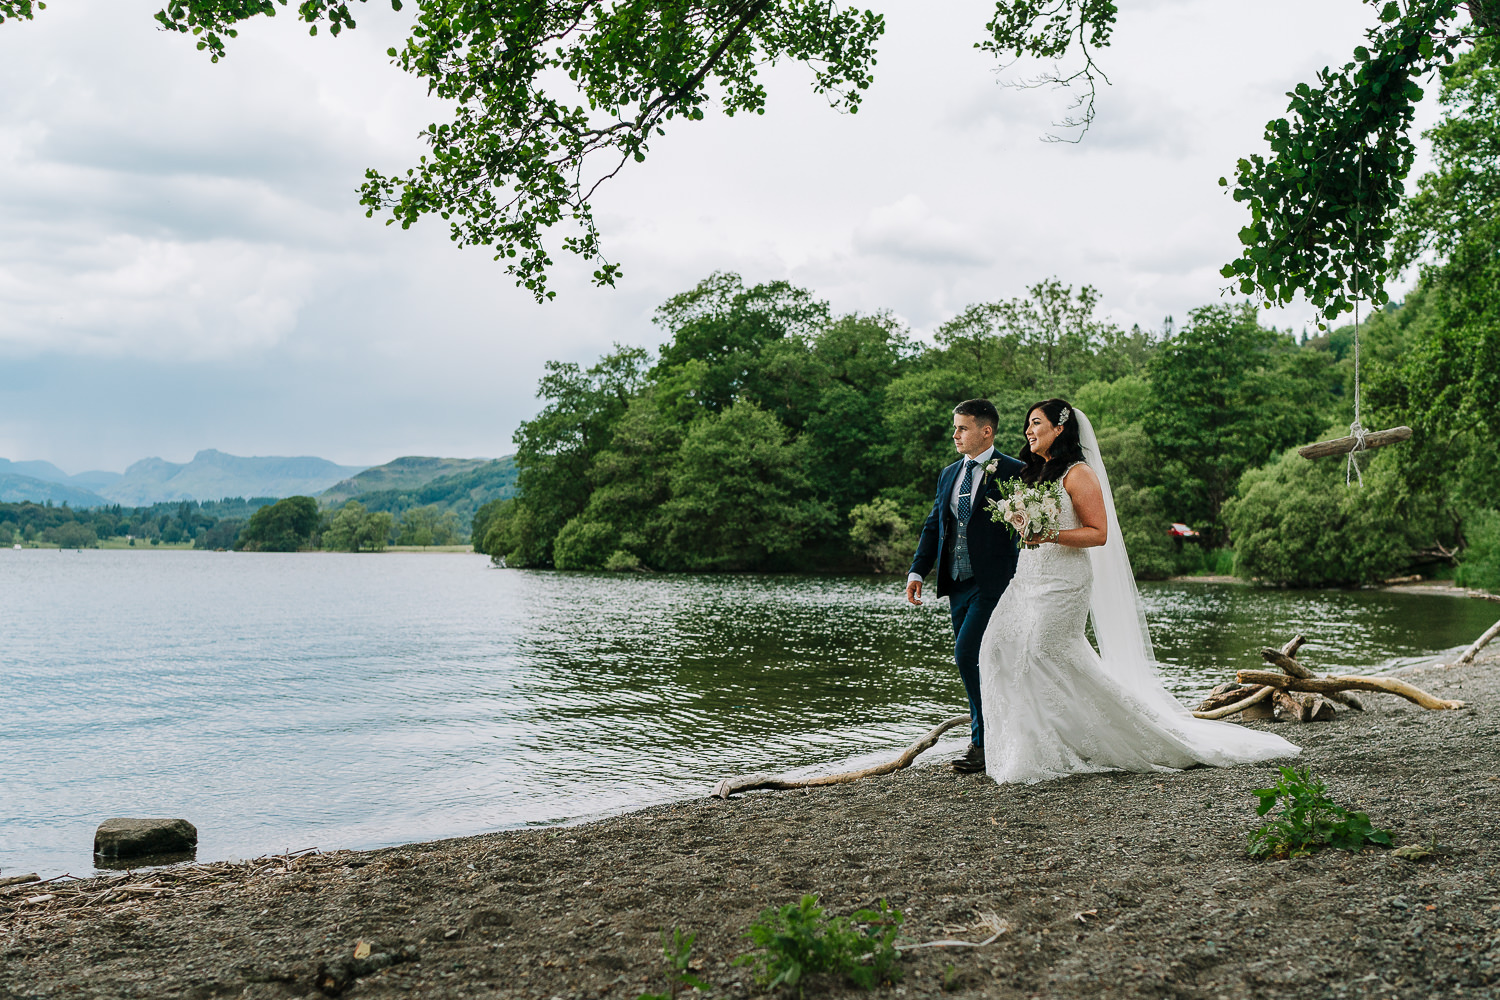 Photo of the bride and groom walking by the lake